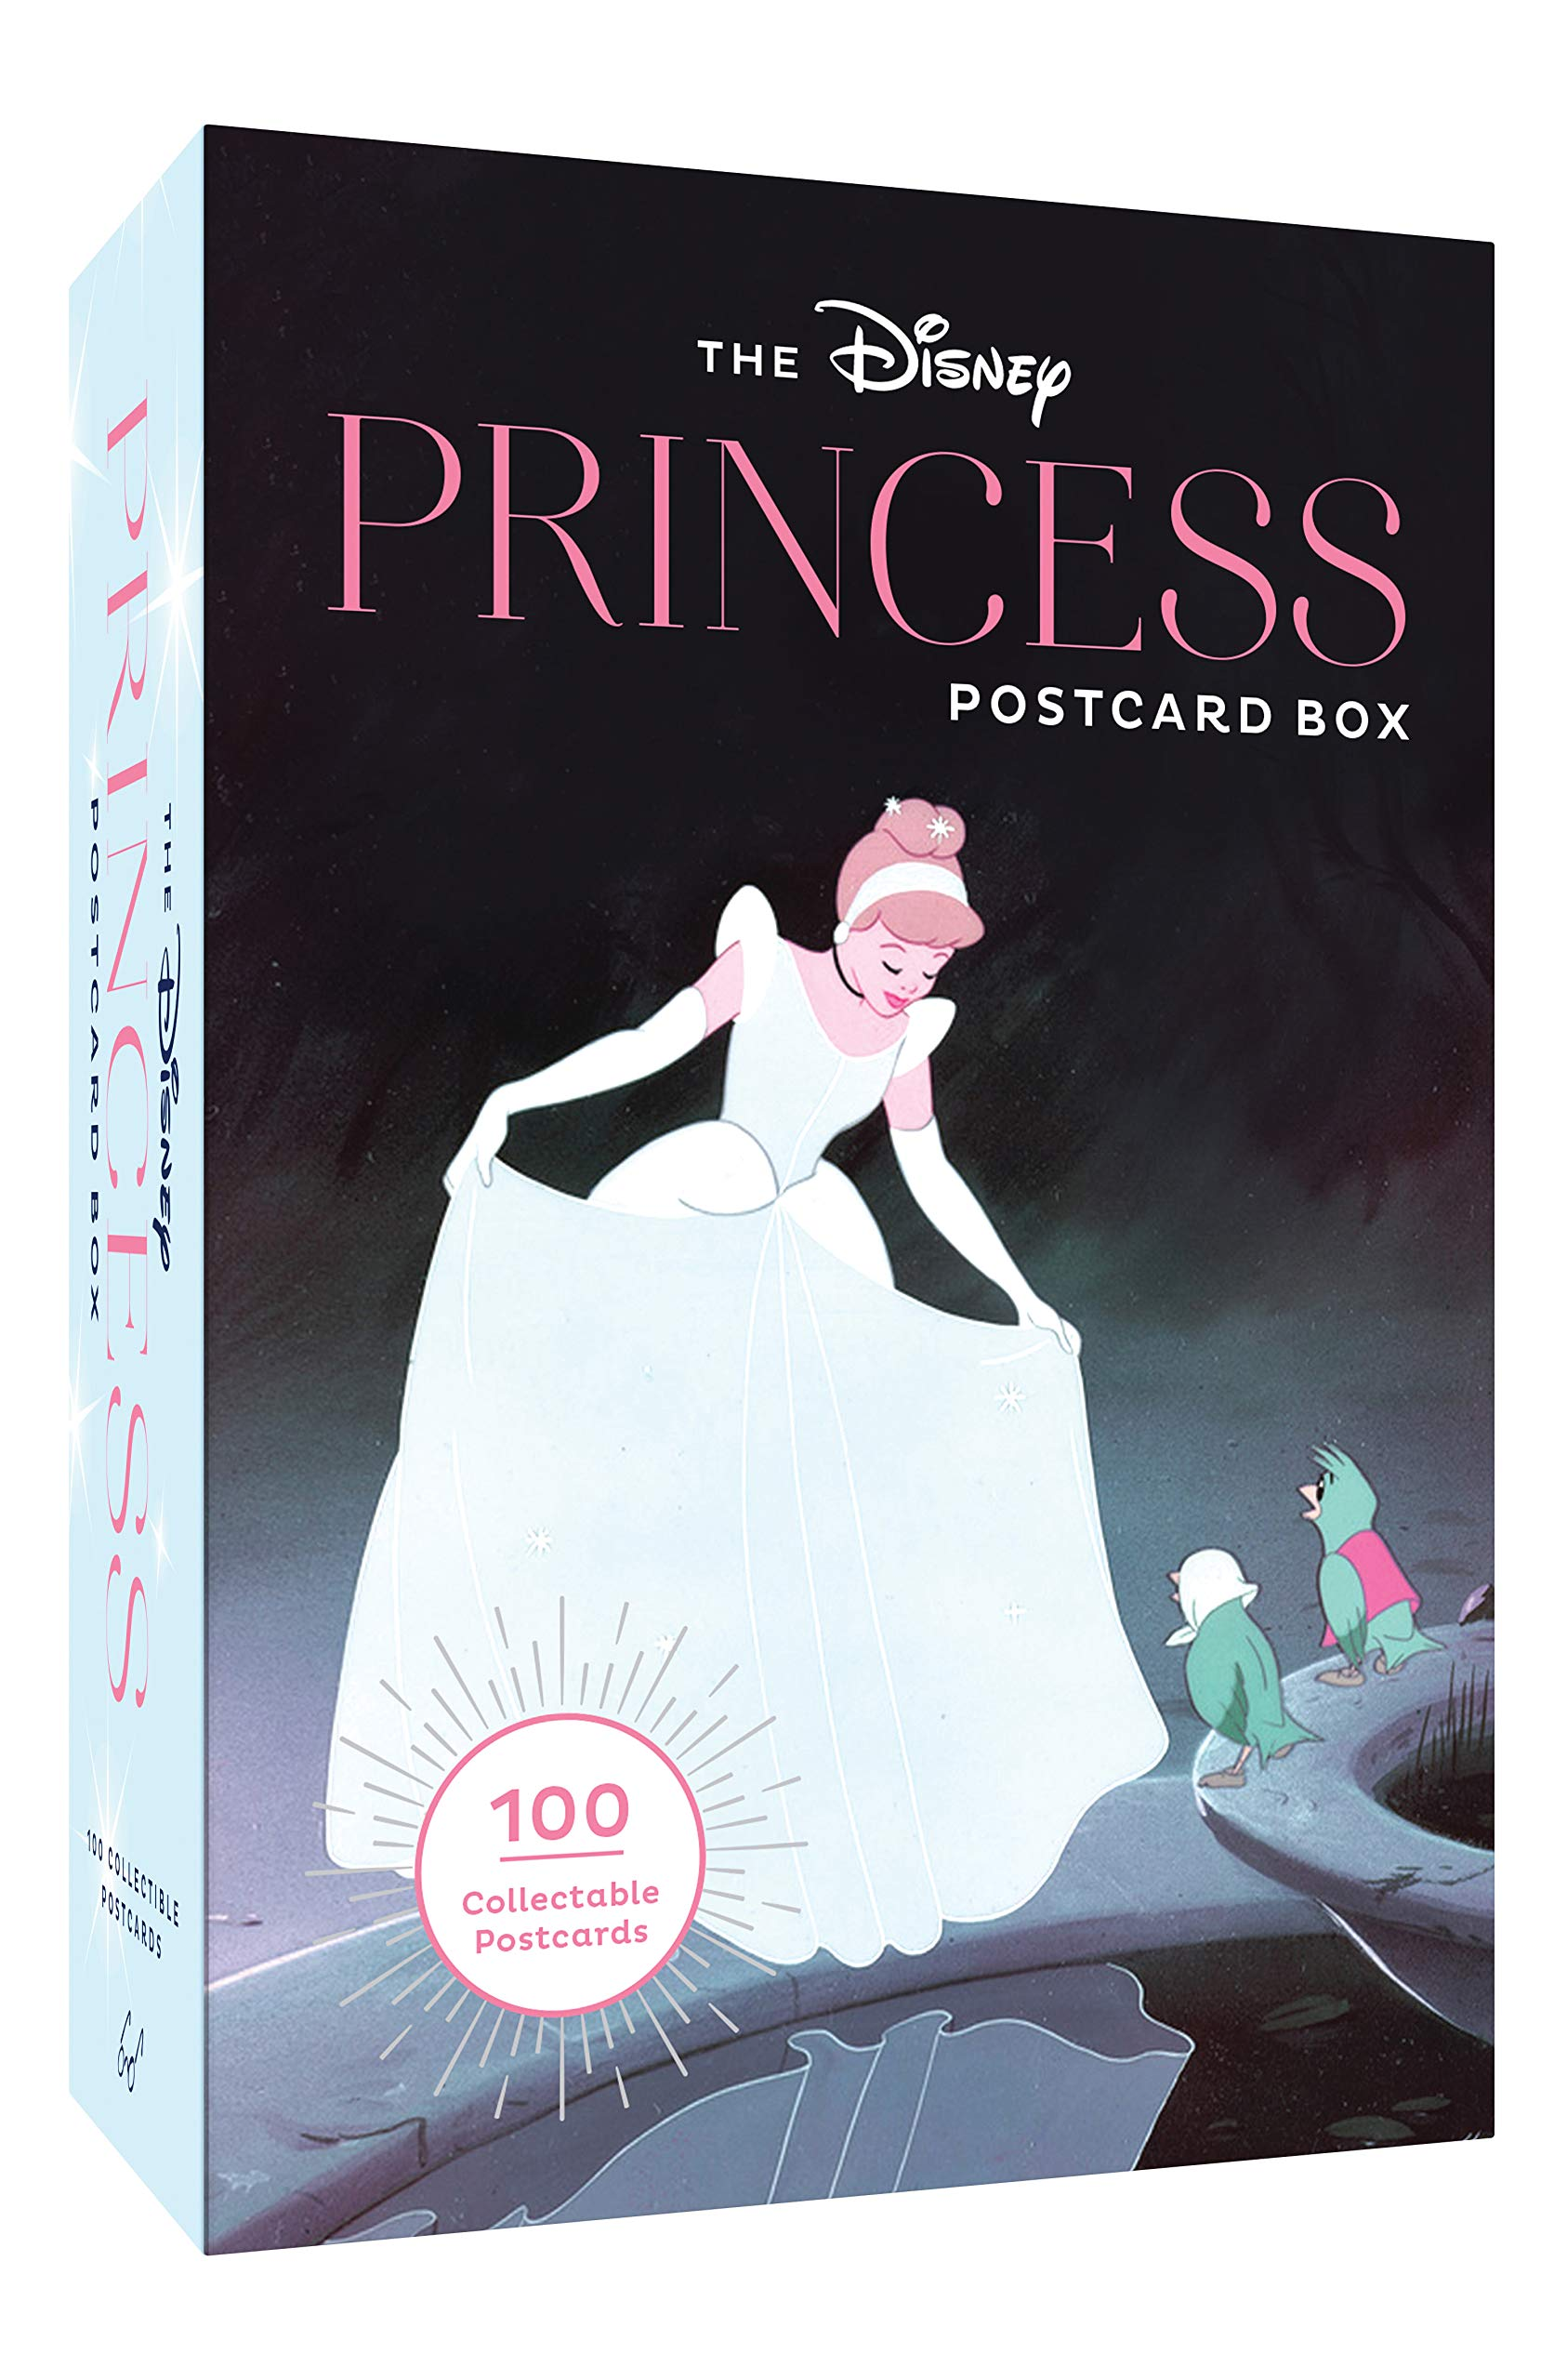 The Disney Princess Postcard Box: 100 Collectible Postcards by Chronicle Books